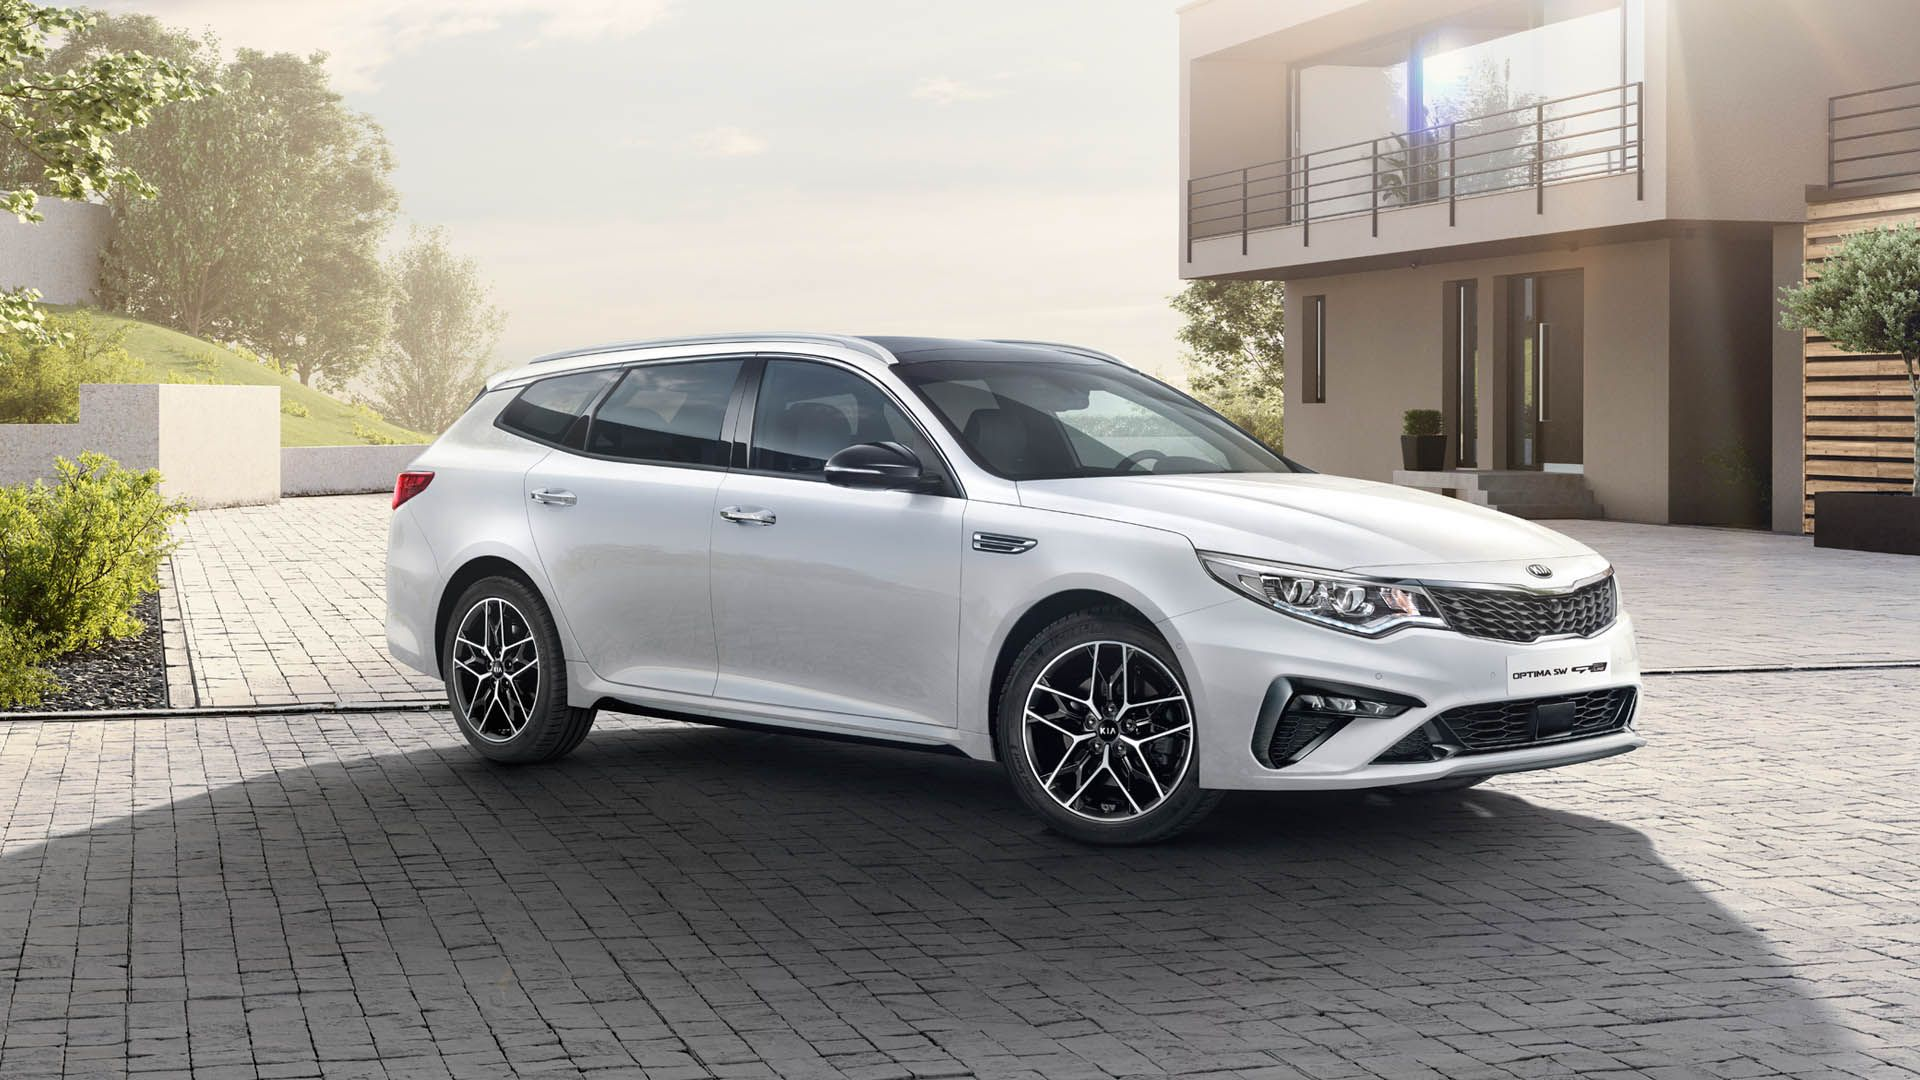 2018 Kia Optima Gets Styling Tech And Engine Updates Geneva Images Carscoops Kia Optima Kia Geneva Motor Show